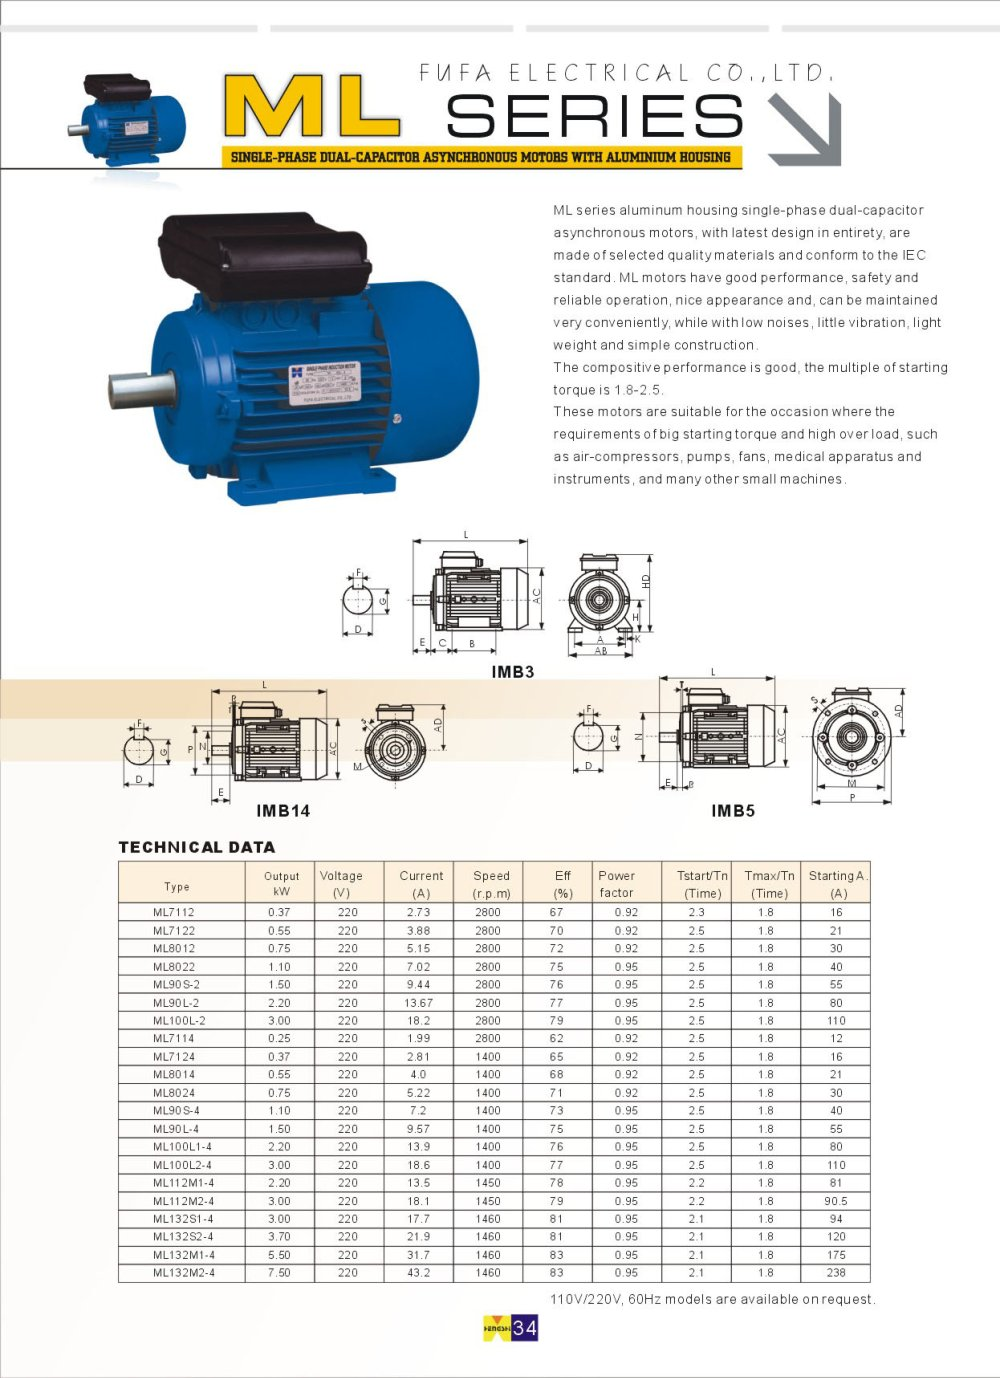 ML series single-phase dual-capacitor asynchronous motors with aluminium housing - 1 / 1 Pages